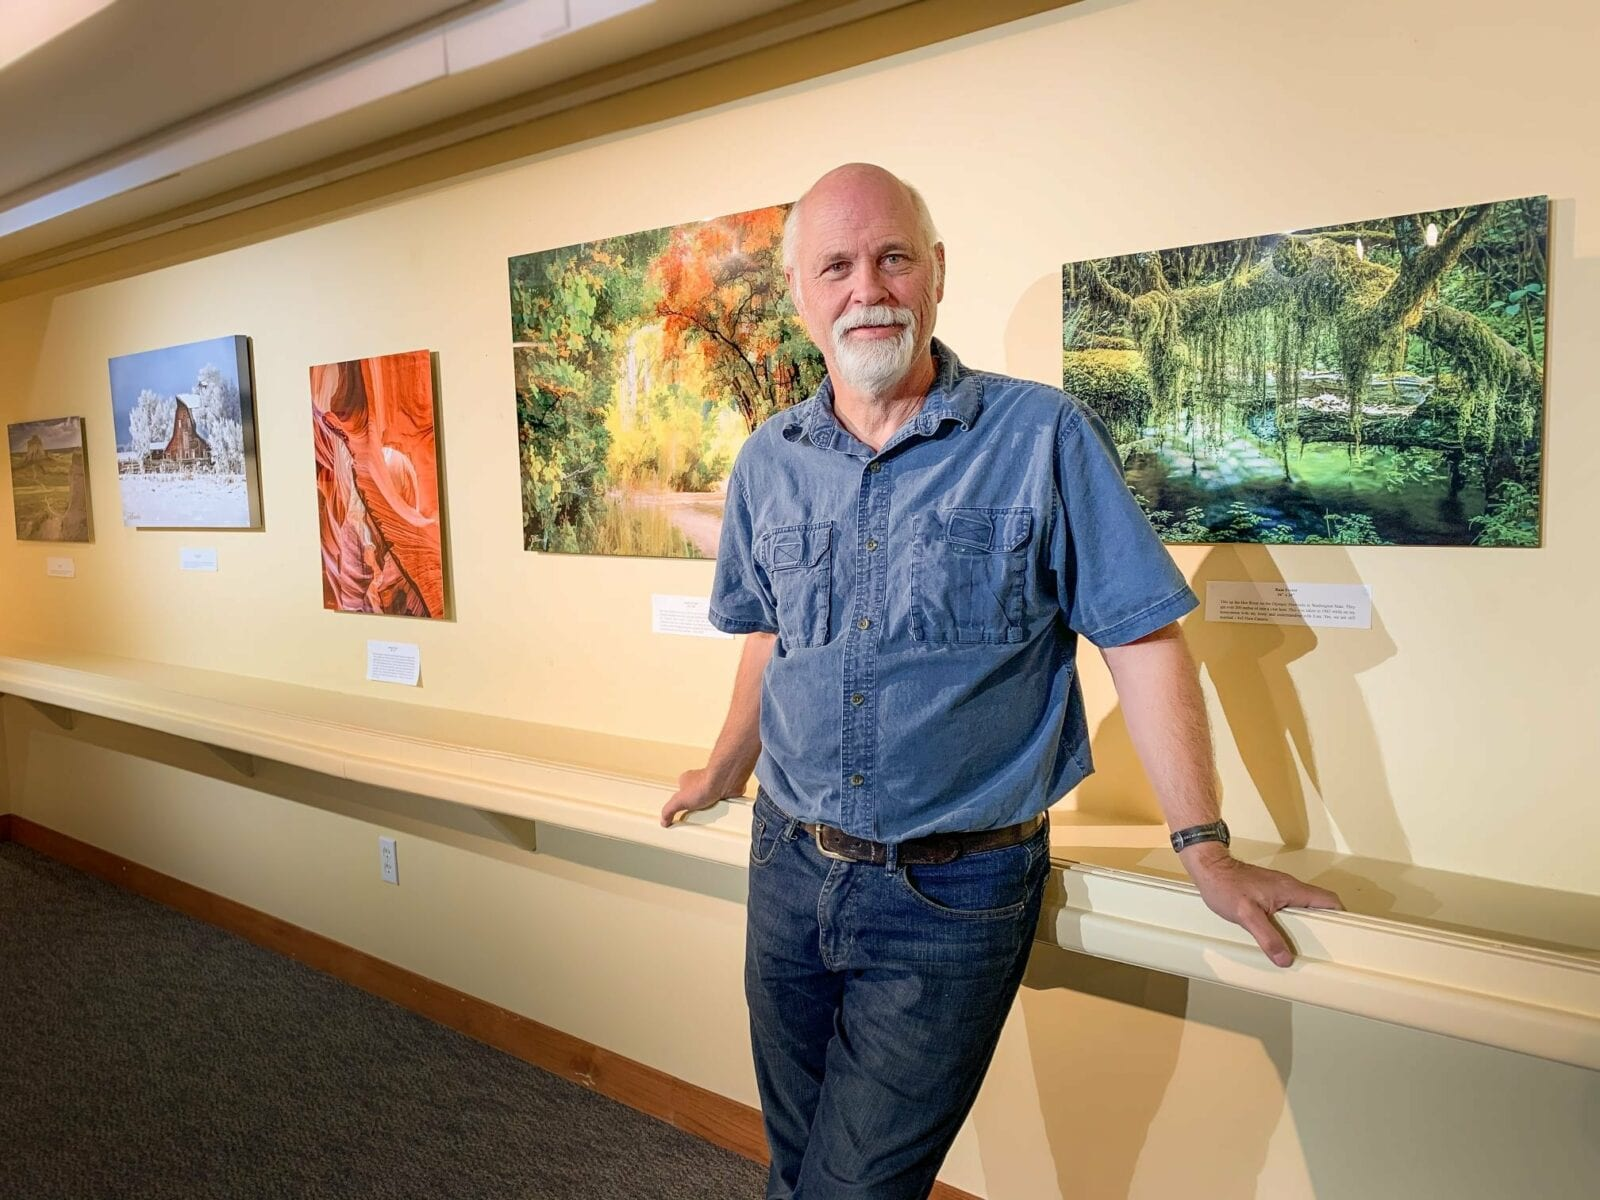 Image of a man in a painting gallery within the Fort Morgan Public Library & Museum in Colorado